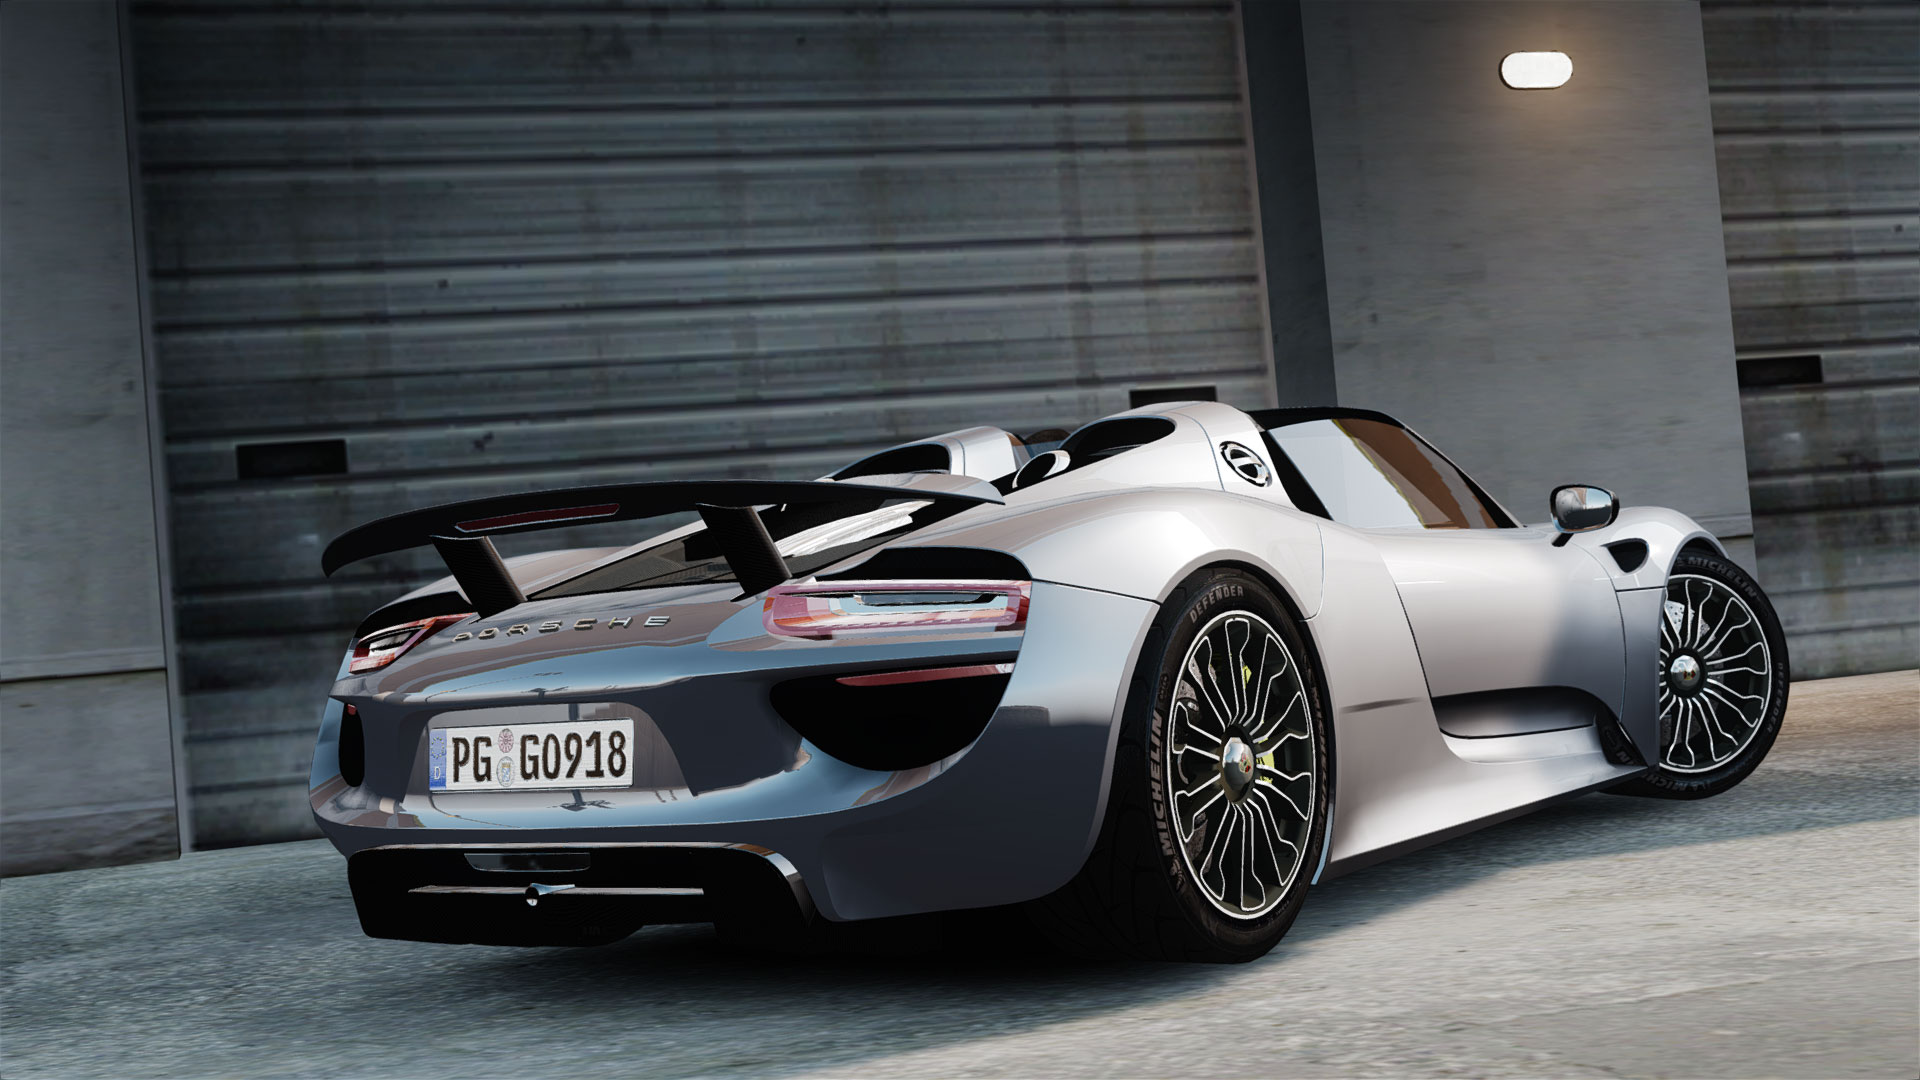 porsche 918 spyder 2015 vehicules pour gta iv sur gta. Black Bedroom Furniture Sets. Home Design Ideas